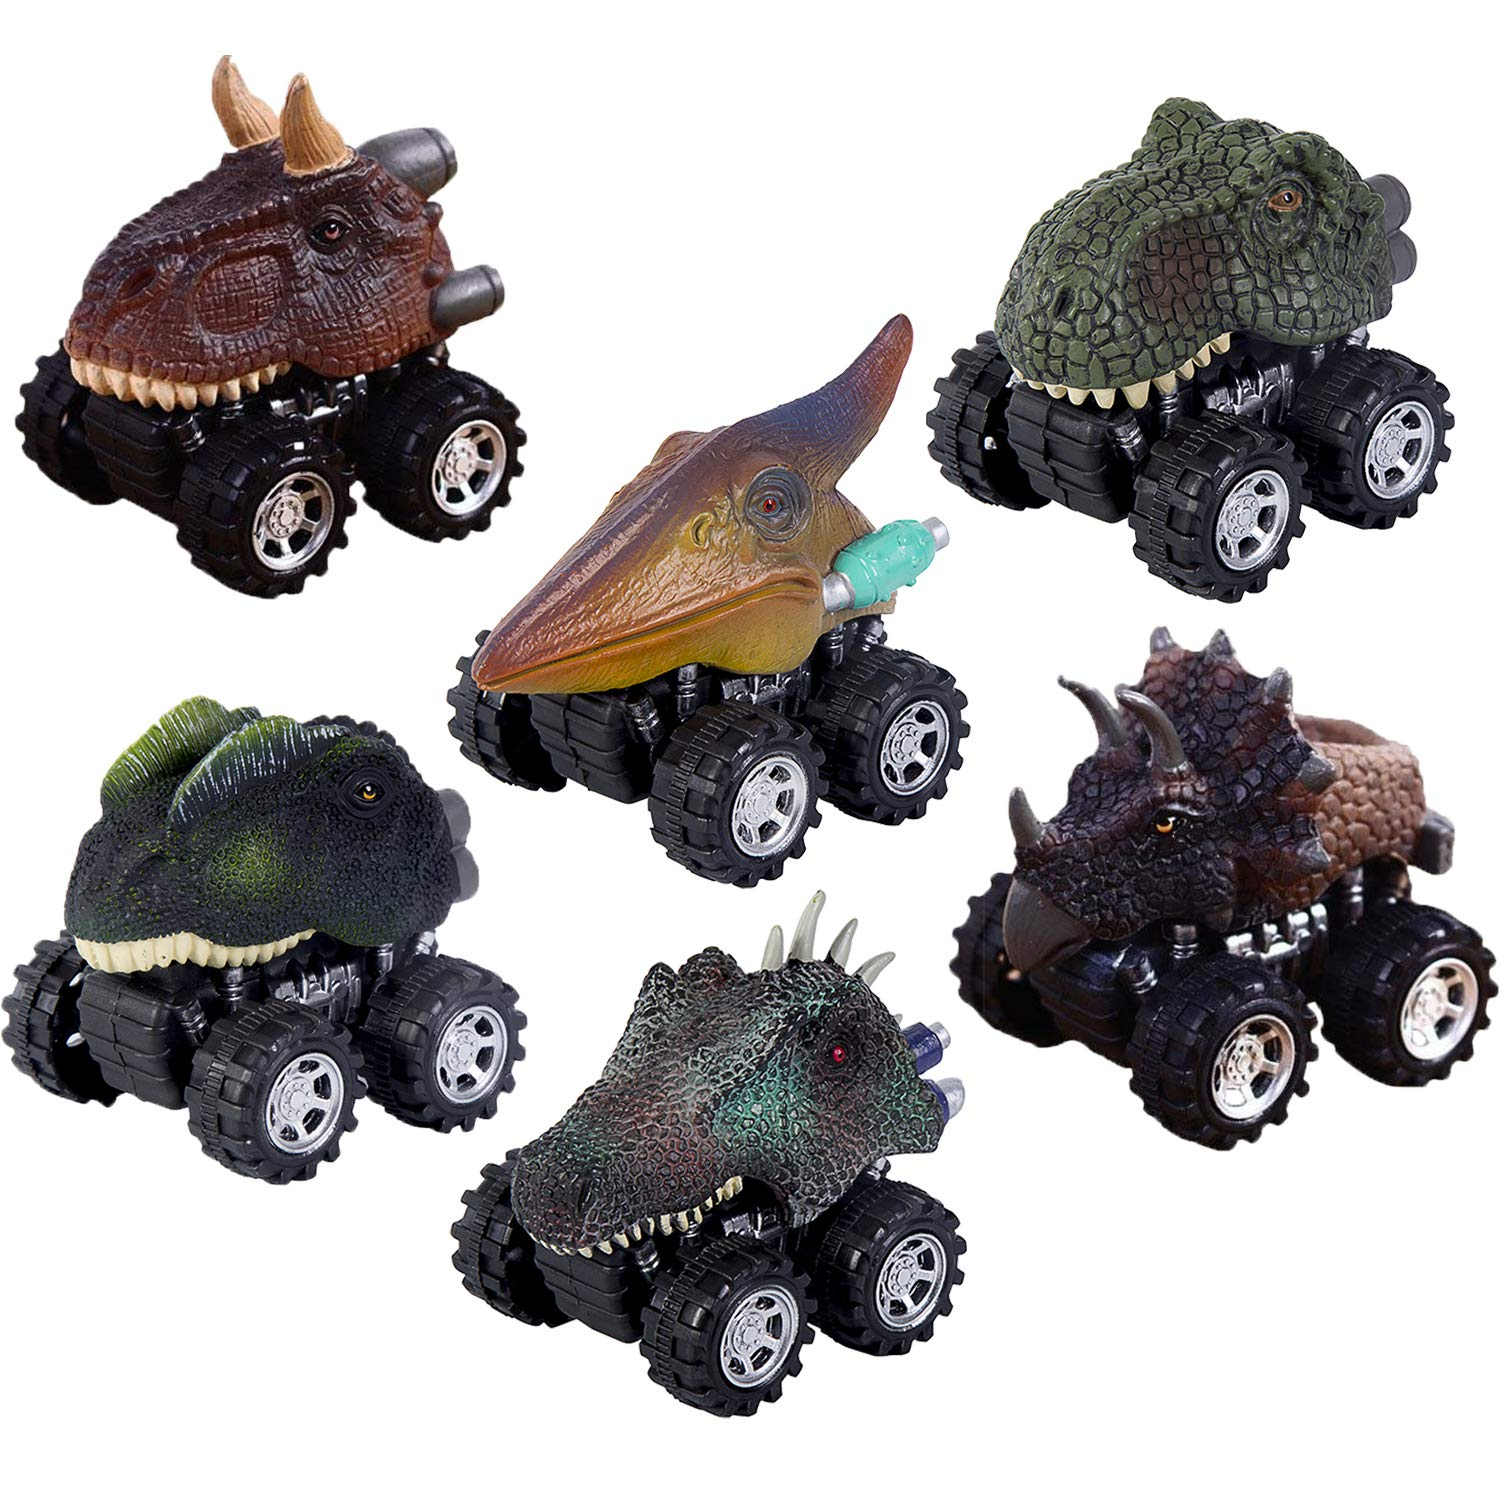 Oiuros Pull Back Dinosaur Cars, Dinosaur Cars Toys with Big Tire Wheel for 3-14 Year Old Boys Girls Creative Gifts, 6-Pack